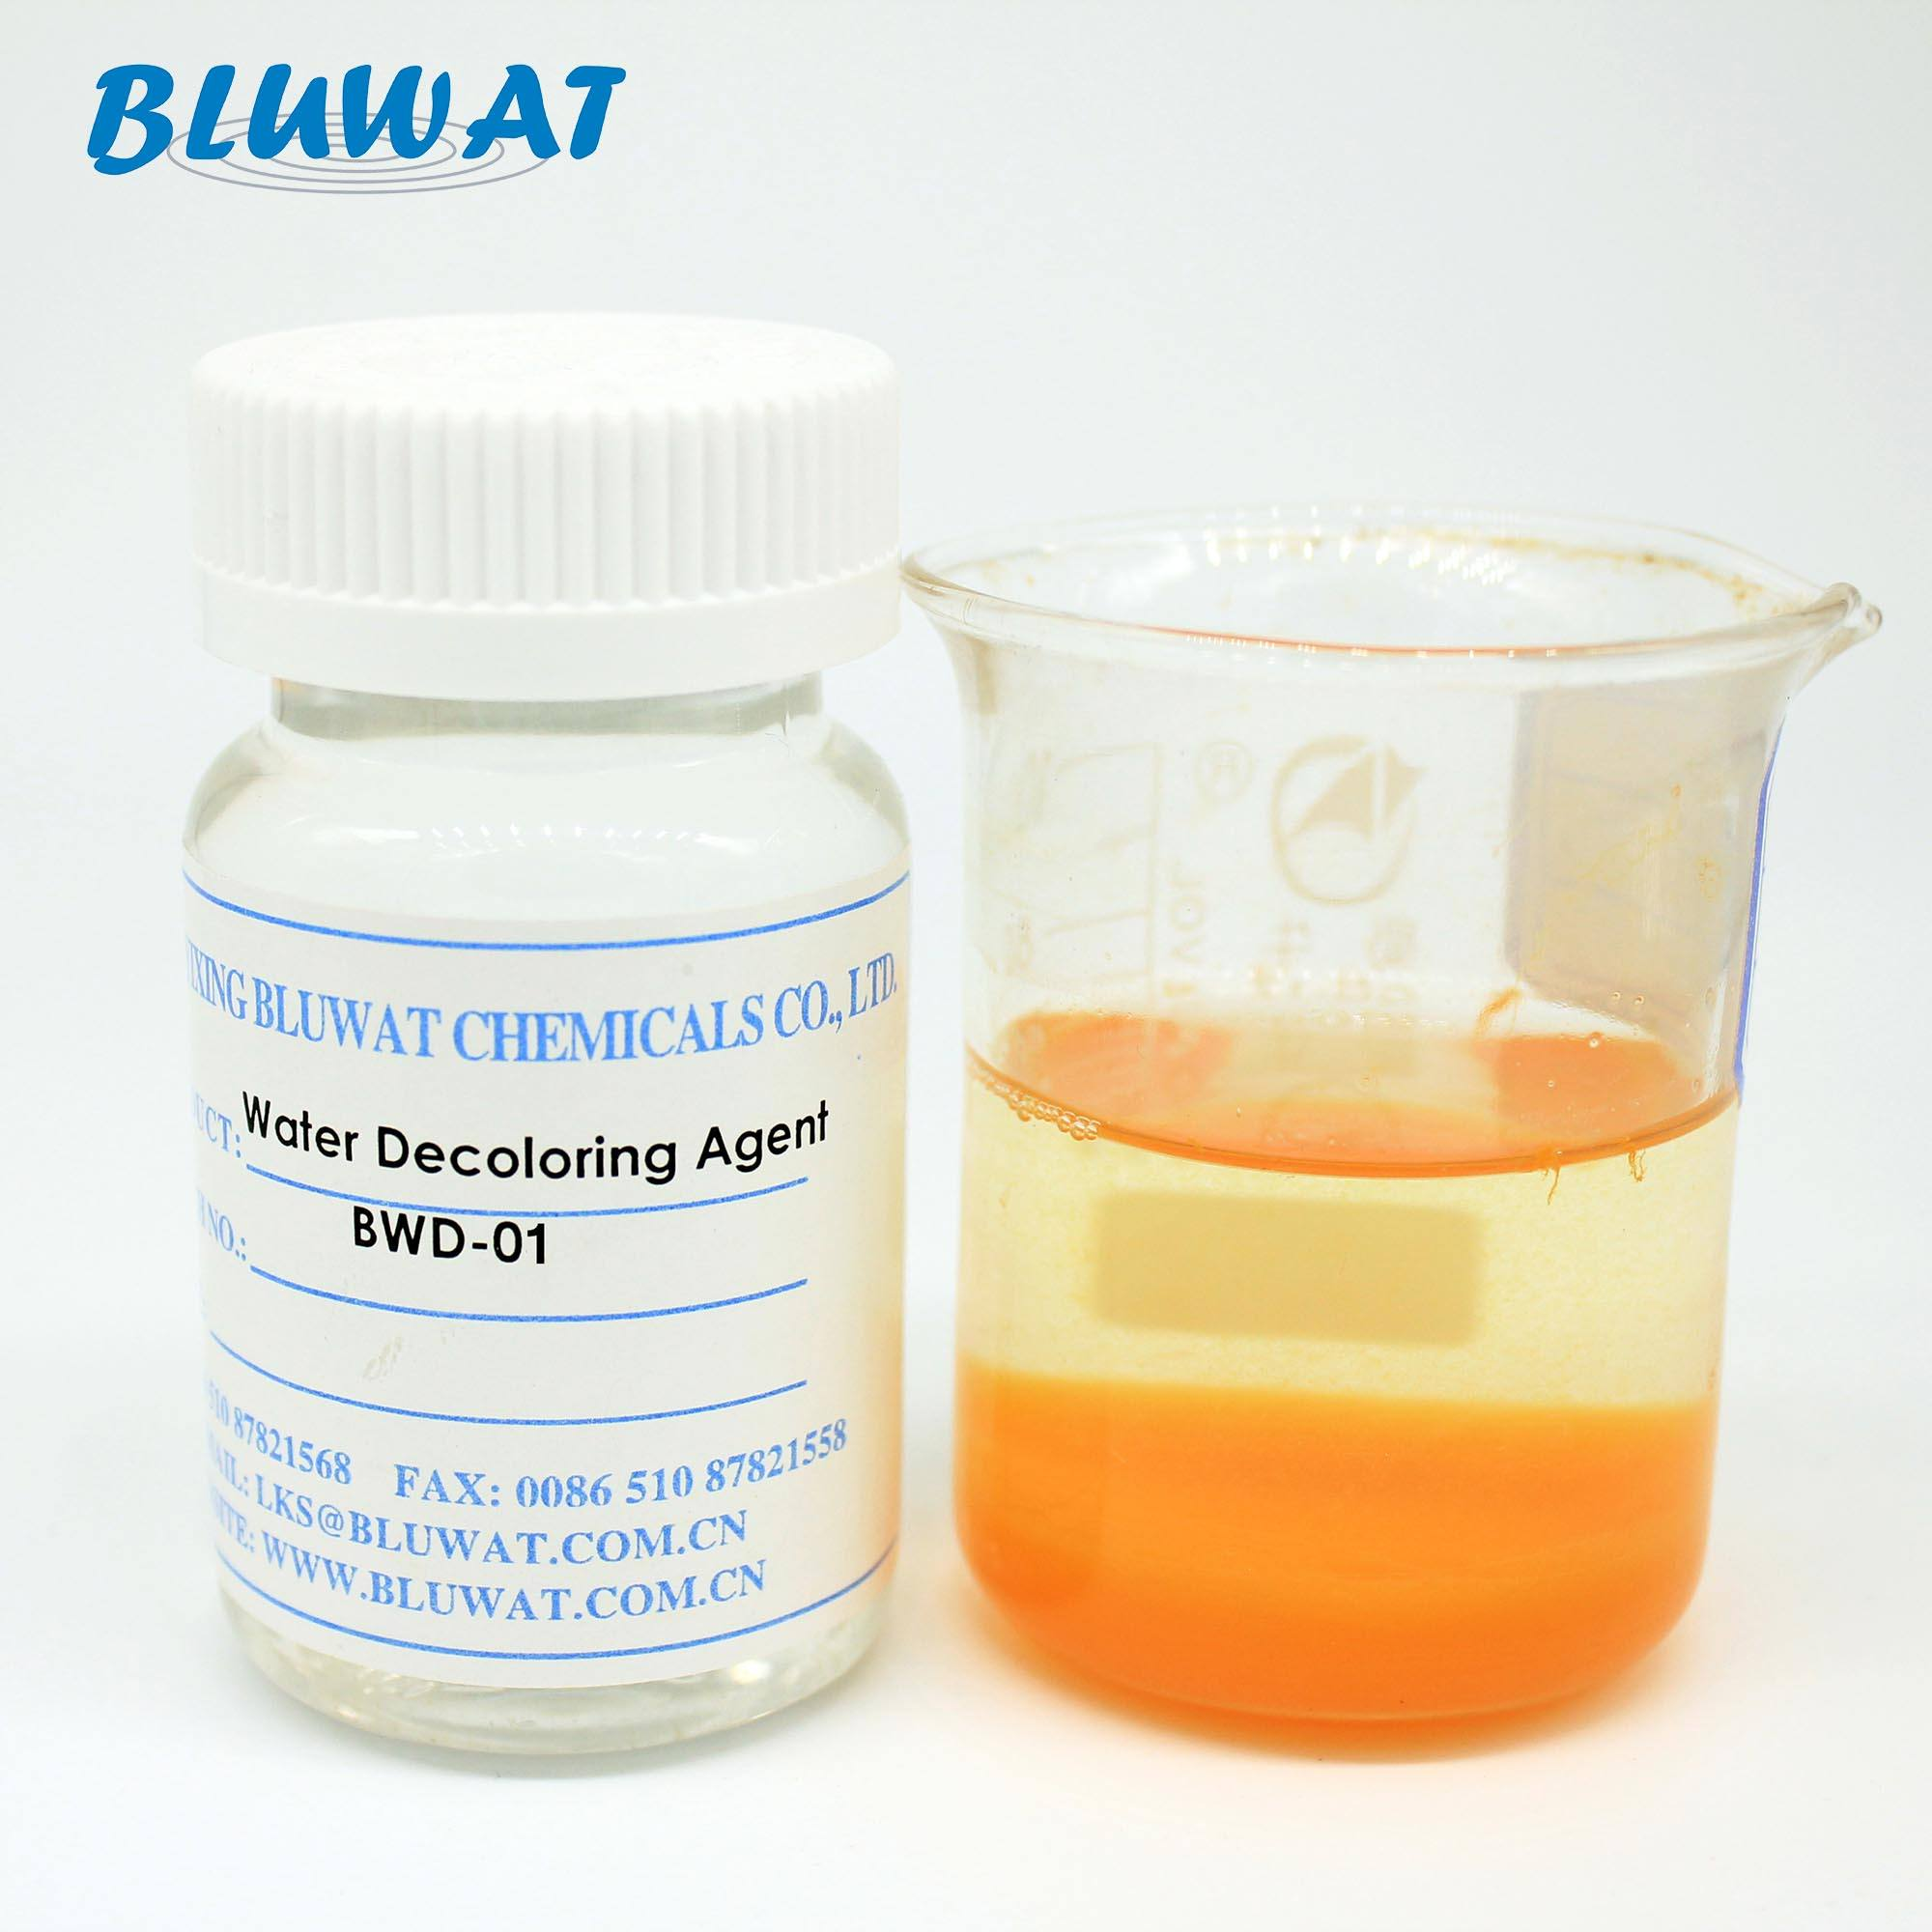 BWD-01 De Color Agent Liquid Polymer Resin Water Treatment Chemicals Paper Chemicals Surfactants